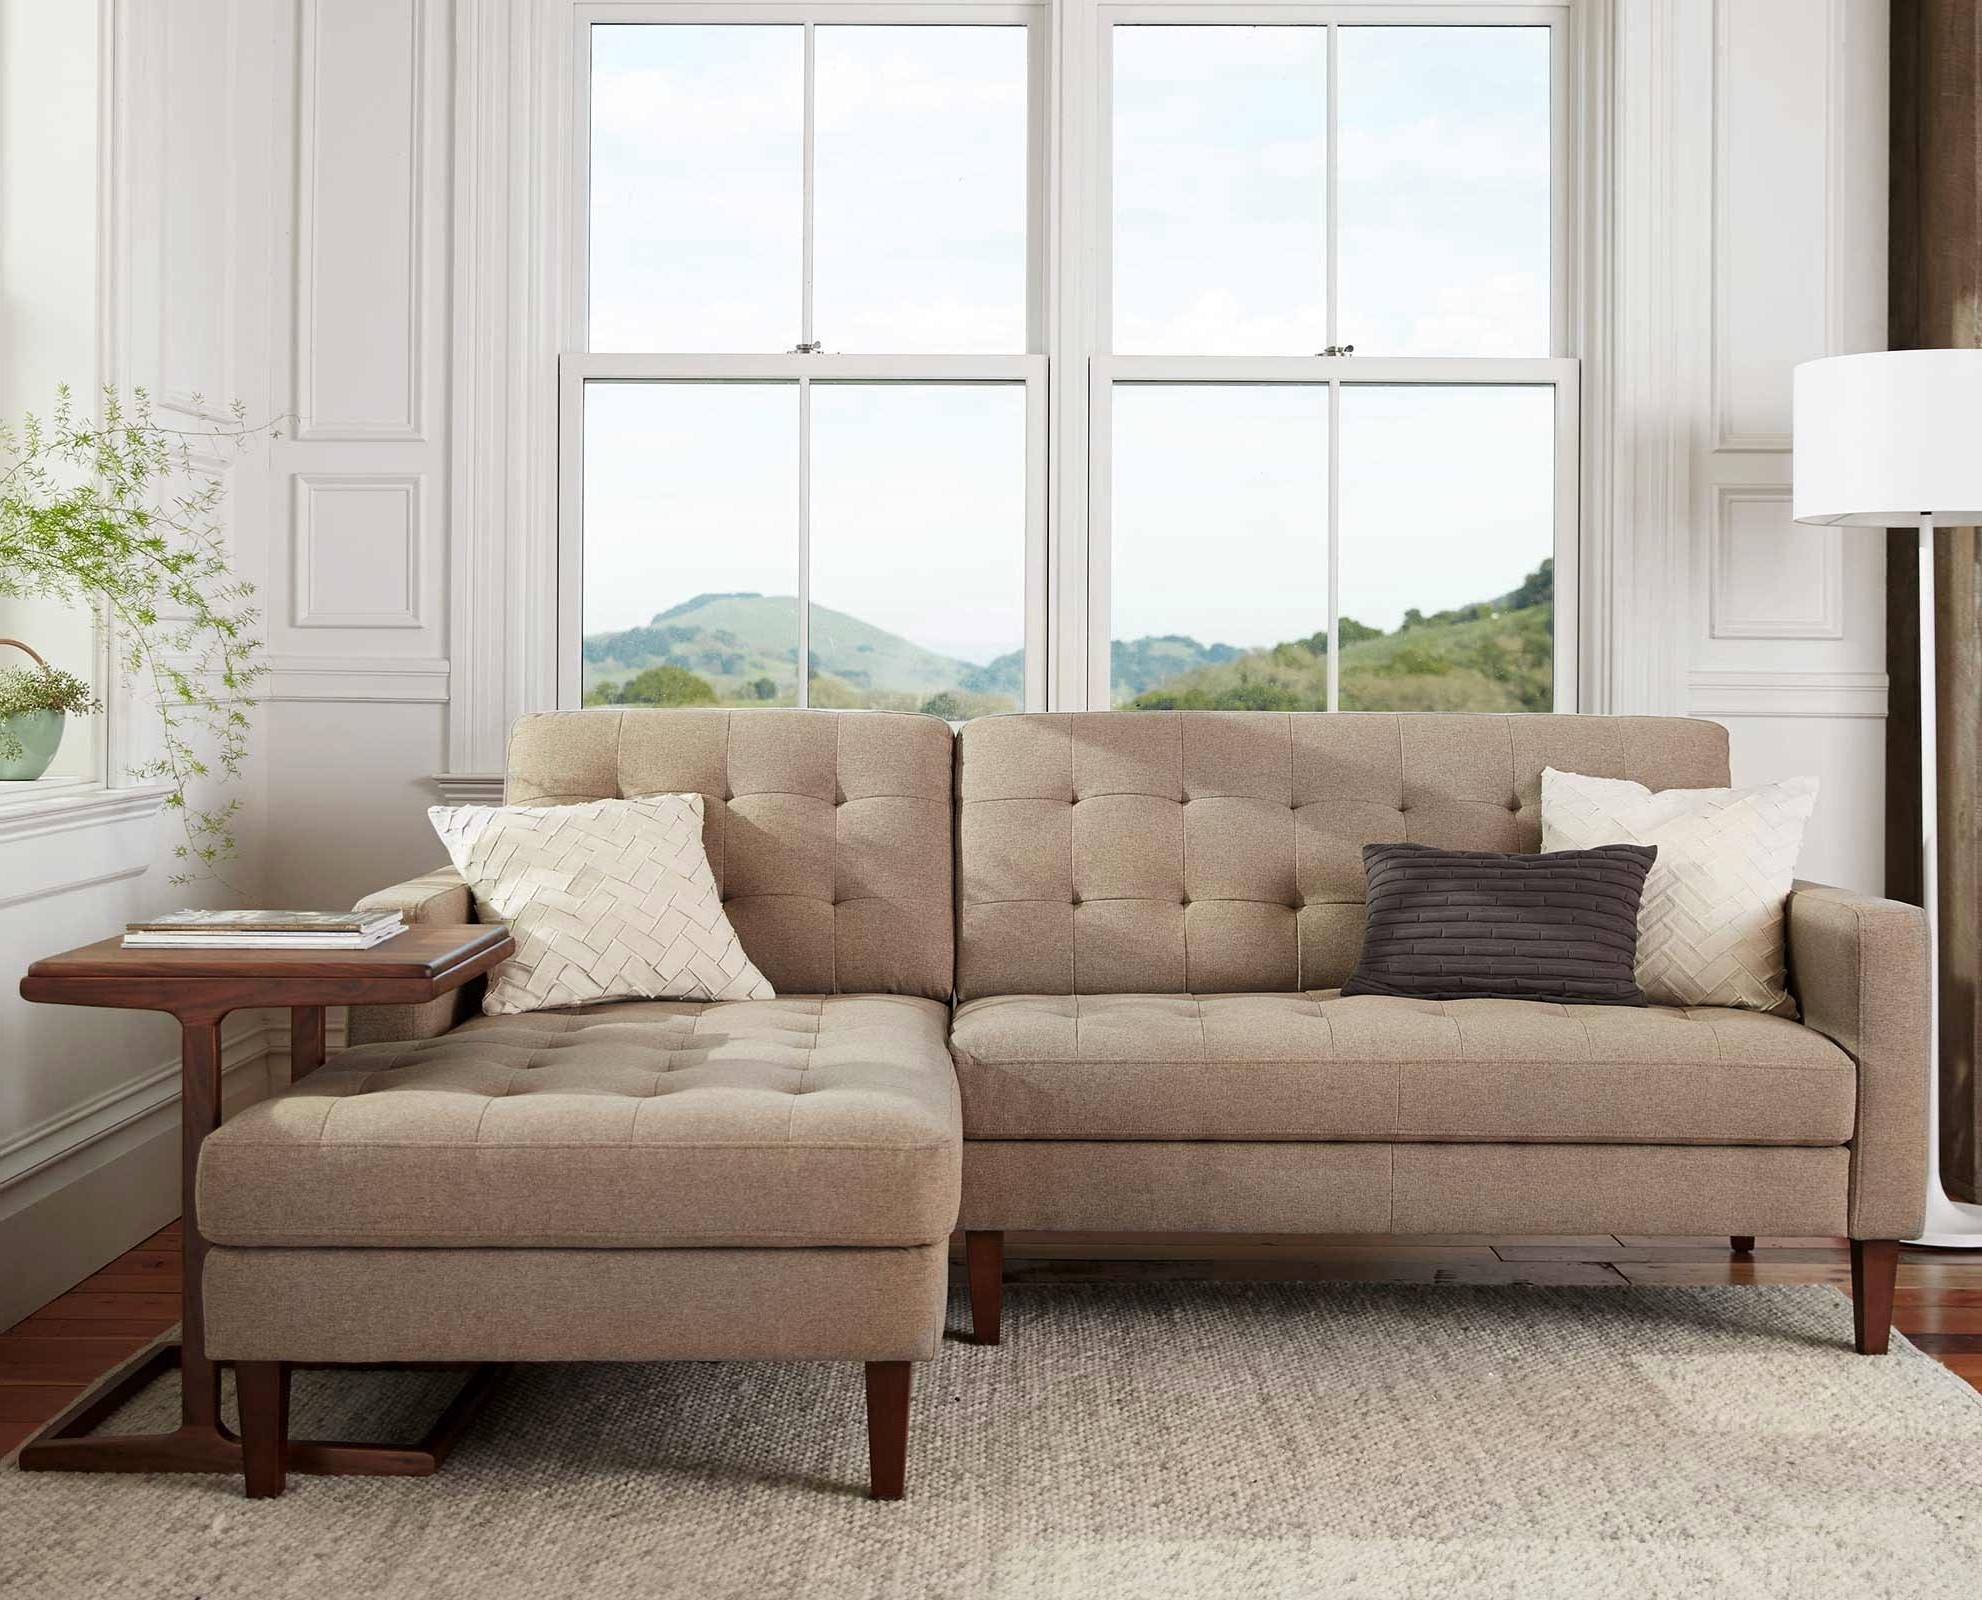 Scandinavian Designs – Create A Relaxing Aesthetic With The Intended For Latest Dania Sectional Sofas (View 14 of 20)